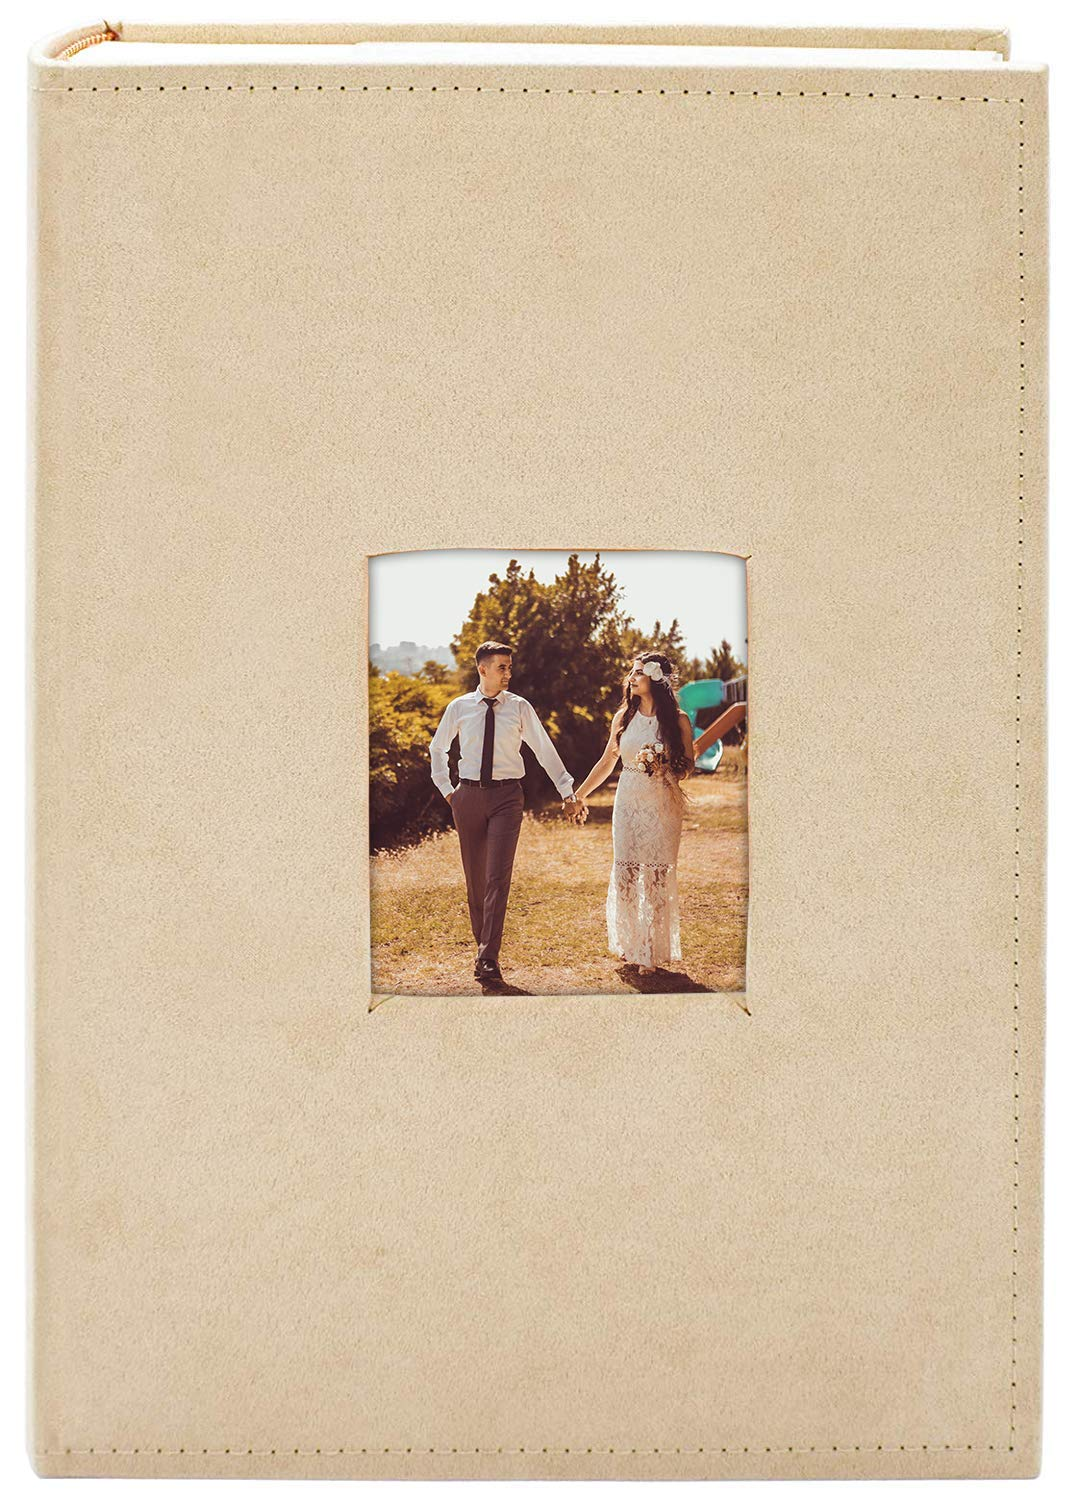 Golden State Art Photo Album, Holds 300 4''x6'' Pictures, 3 per Page, Suede Cover, Beige by Golden State Art